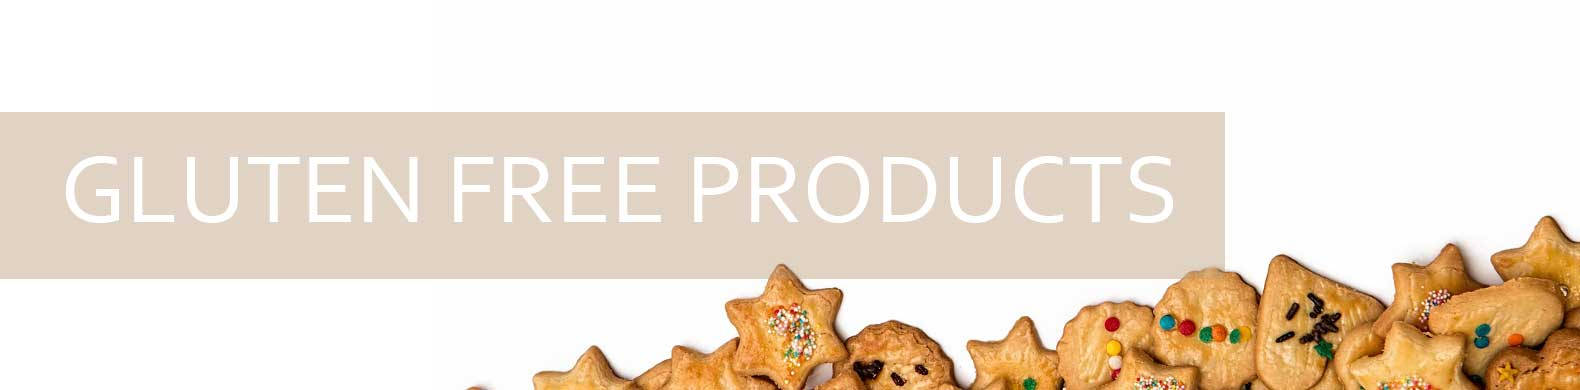 banner gluten-free products look legs with heart and star shapes.